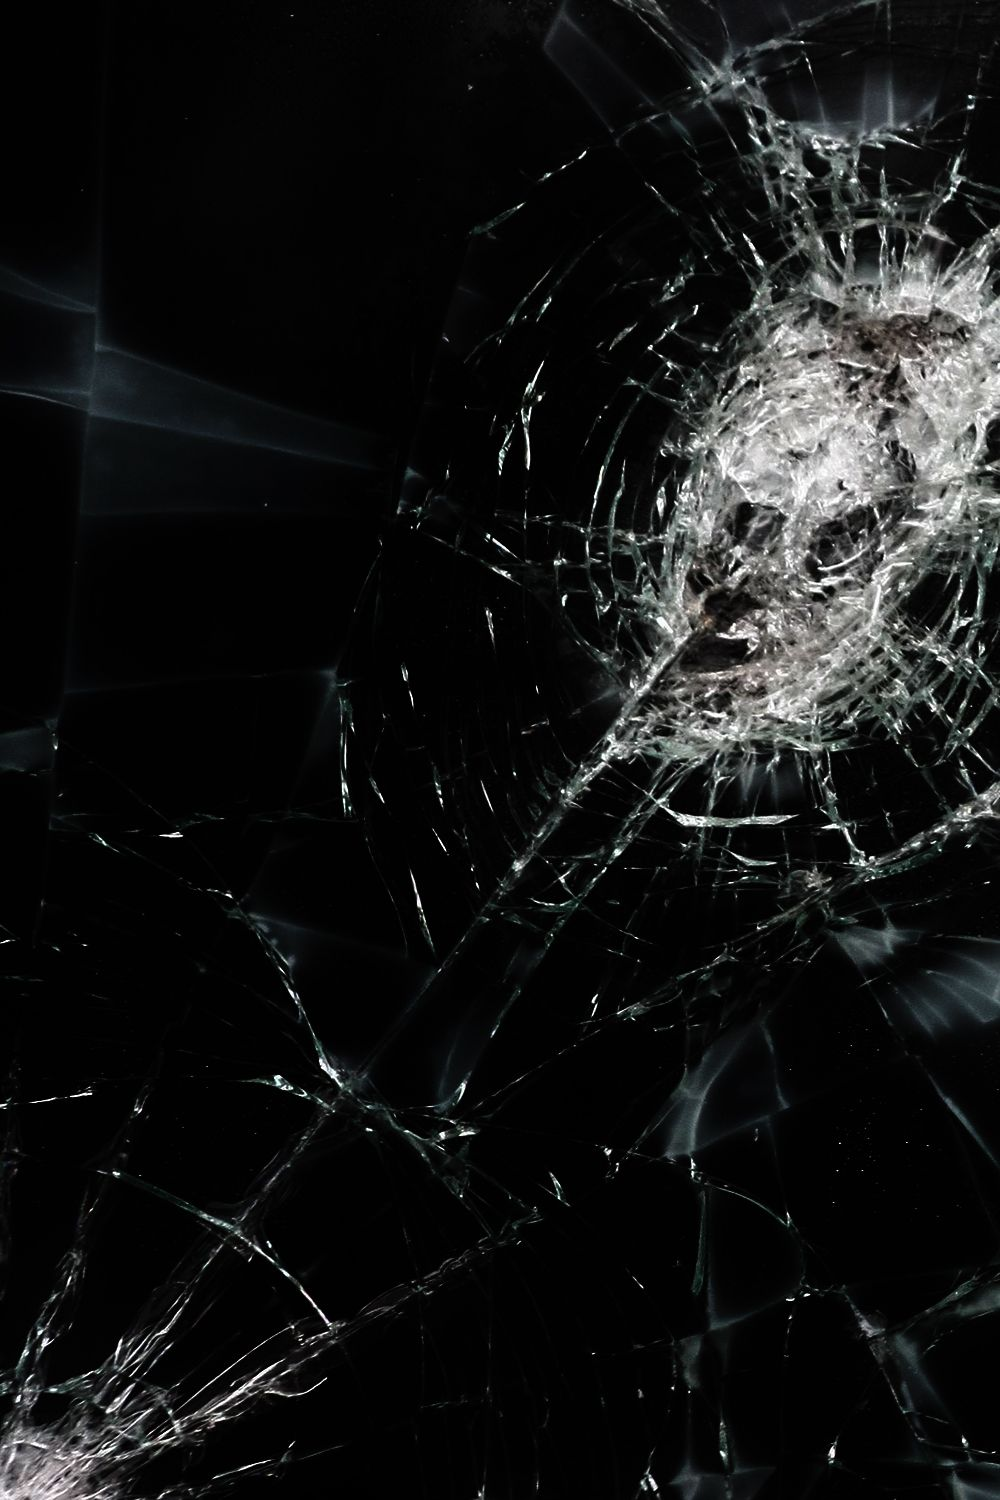 Cracked Phone Screen Wallpaper In 2020 Broken Screen Wallpaper Screen Wallpaper Hd Cracked Wallpaper